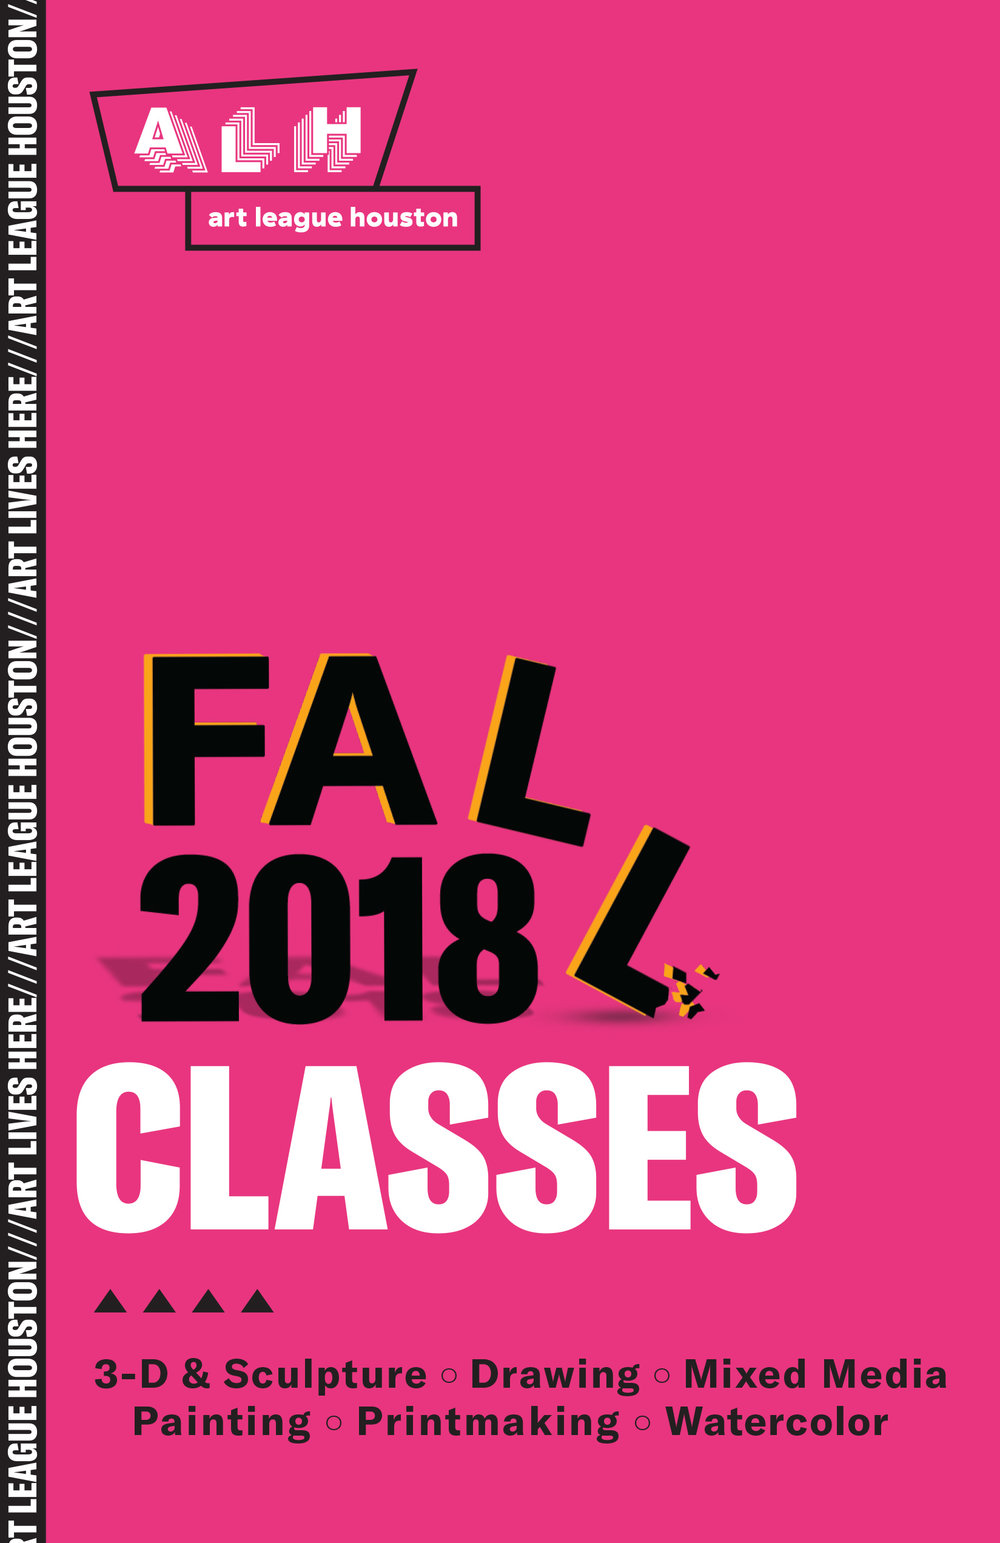 (click above to see full class calendar)